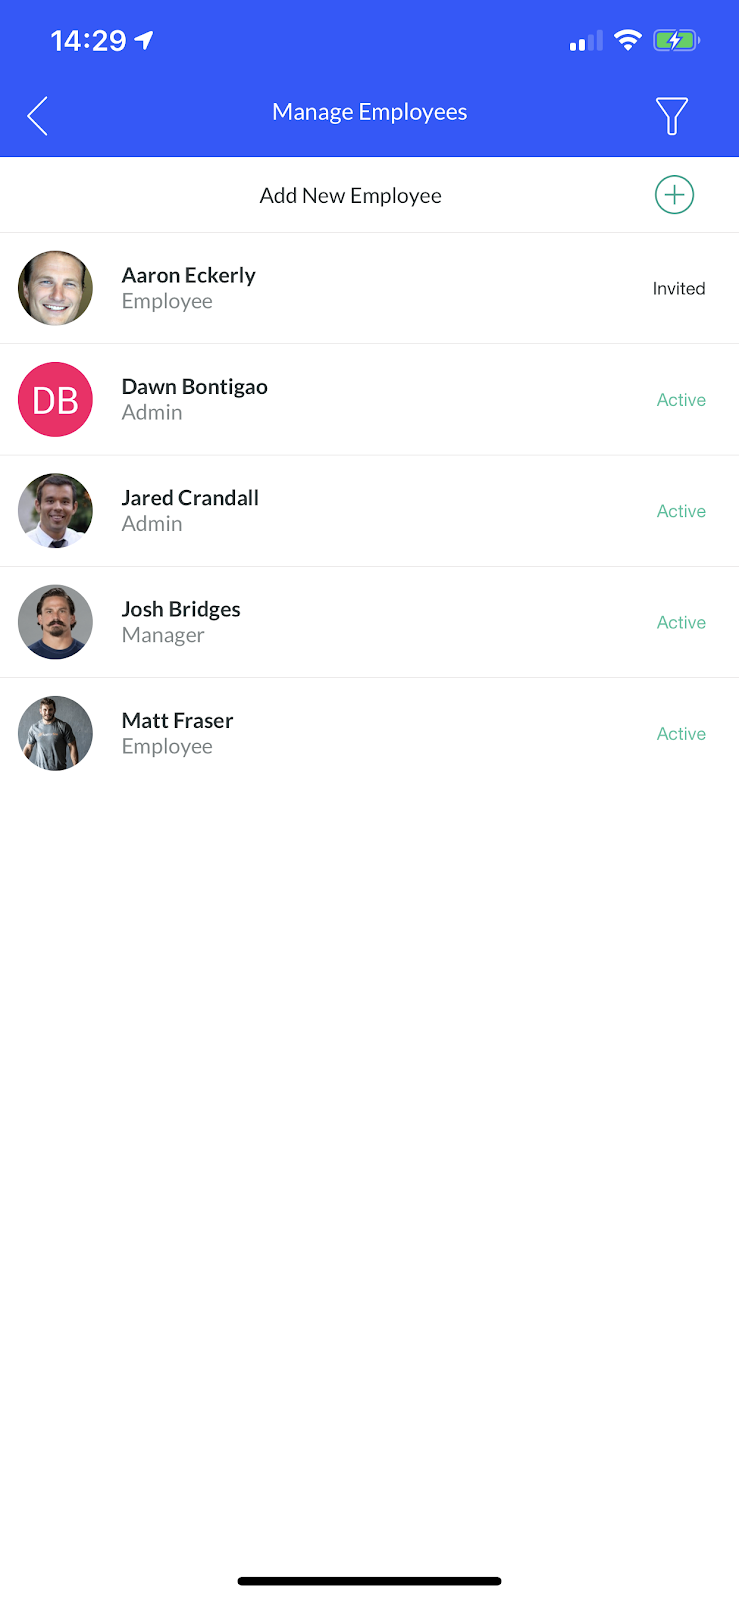 Screenshot showing the 'Manage Employees' section of the mobile app